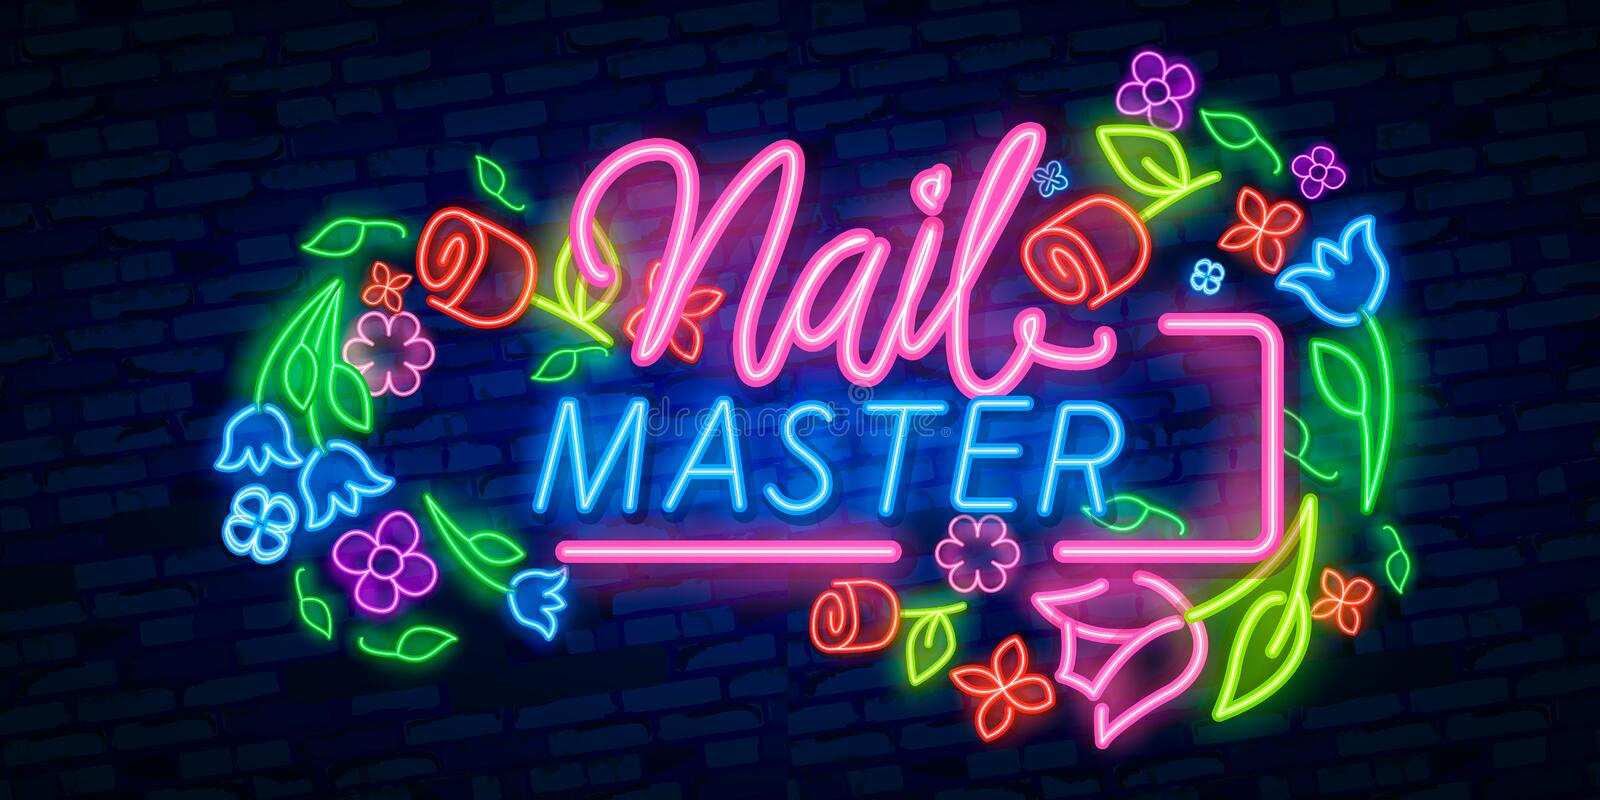 Neon Nail Master Typography Square Poster template neon sign, light banner, neon signboard. Vector lettering. Calligraphy phrase stock illustration